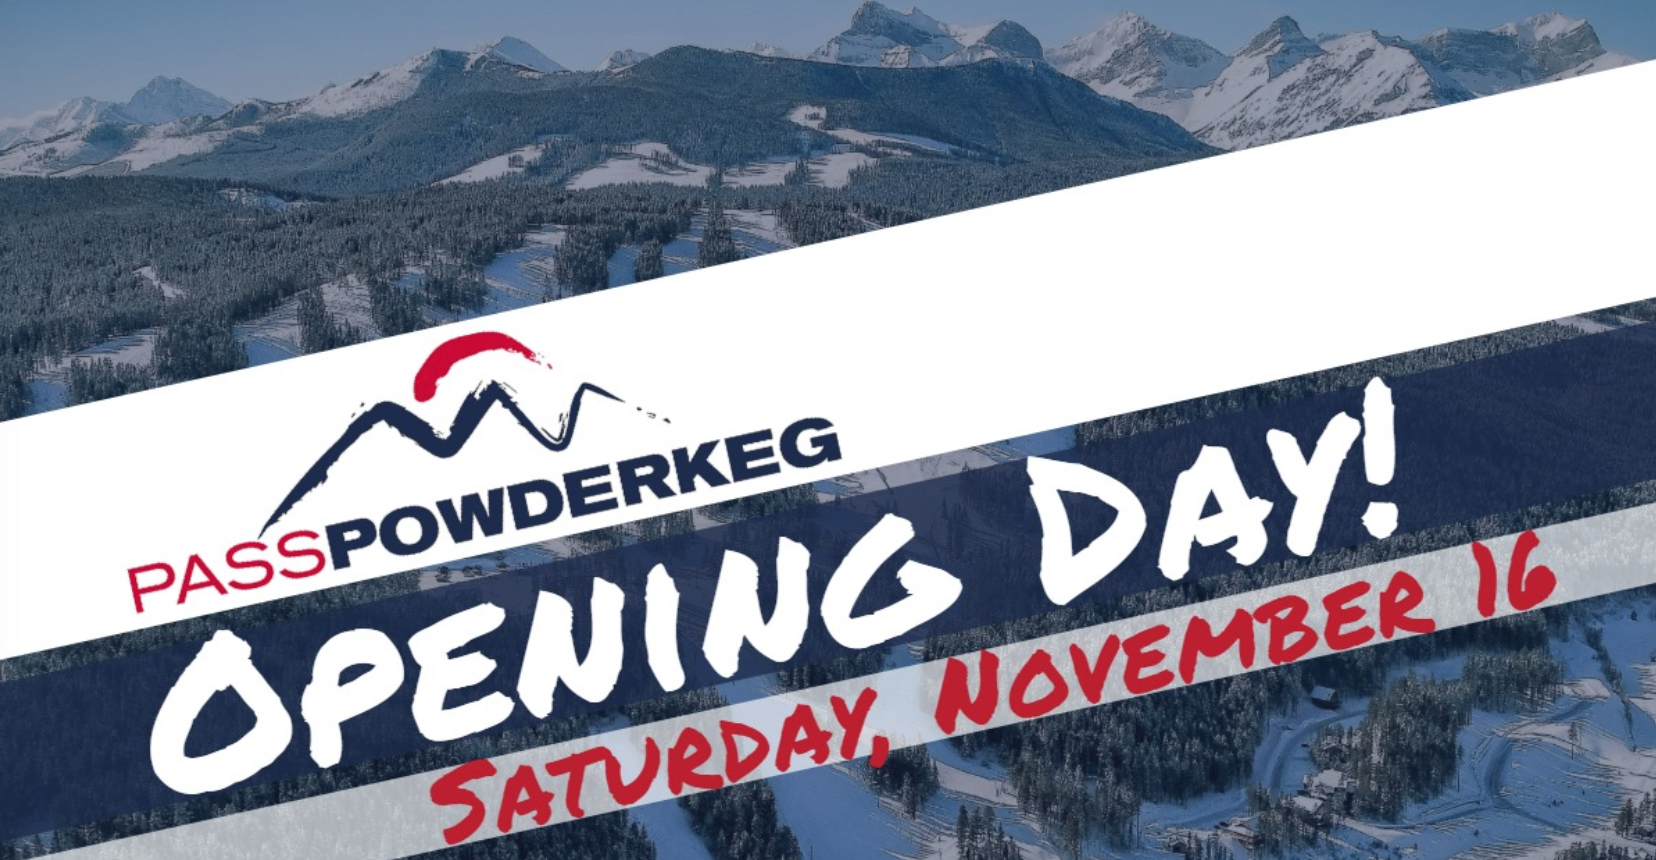 Pass Powderkeg Opening Day